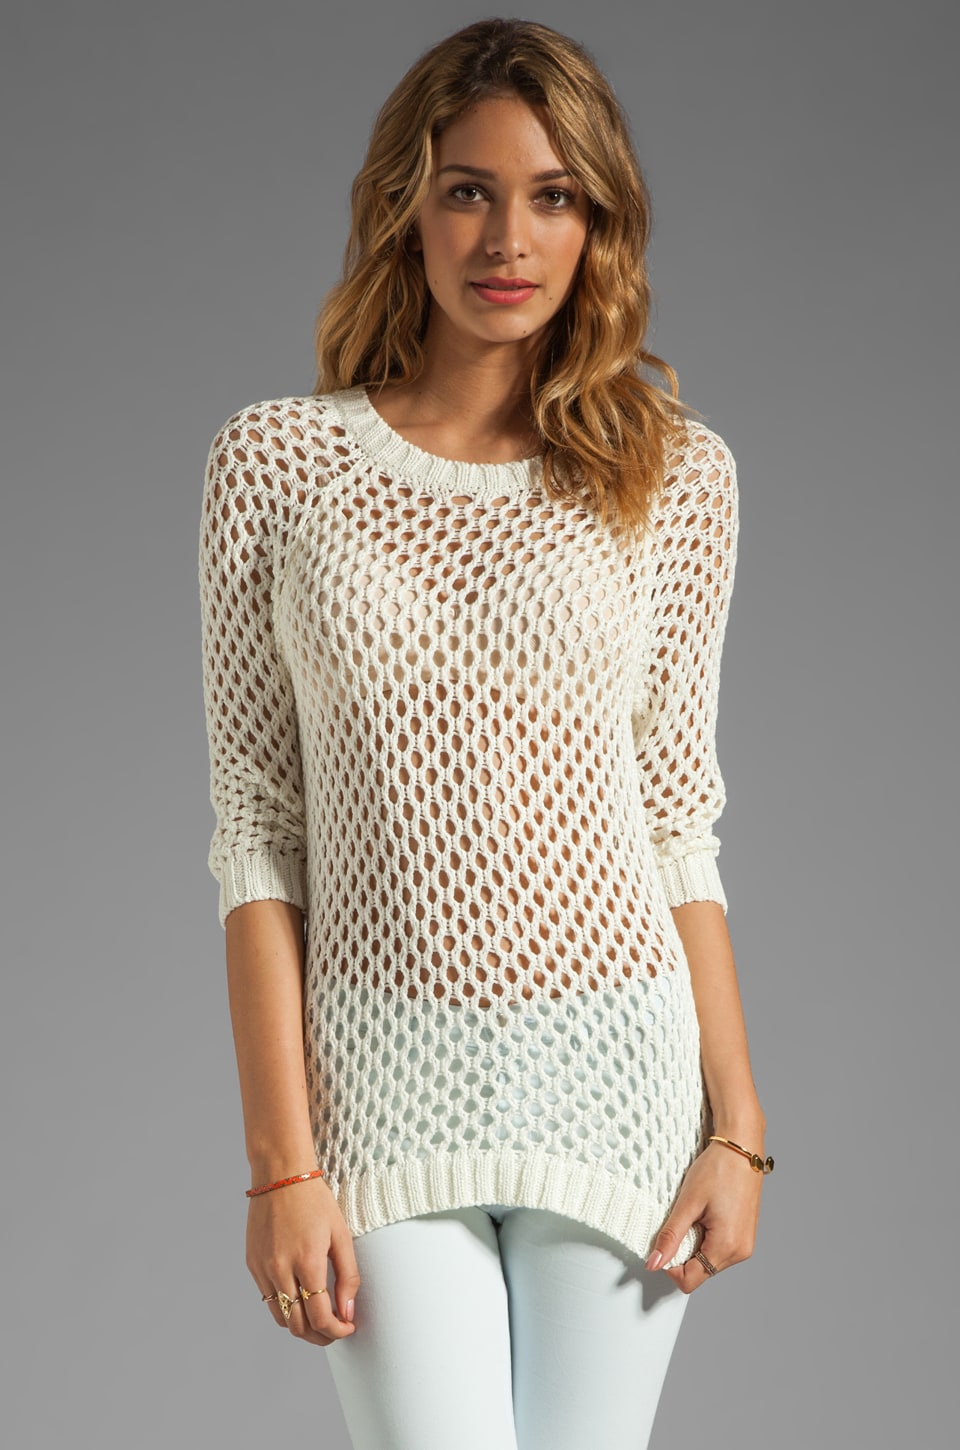 Soft Joie Addler Open Stitch Sweater in Porcelain